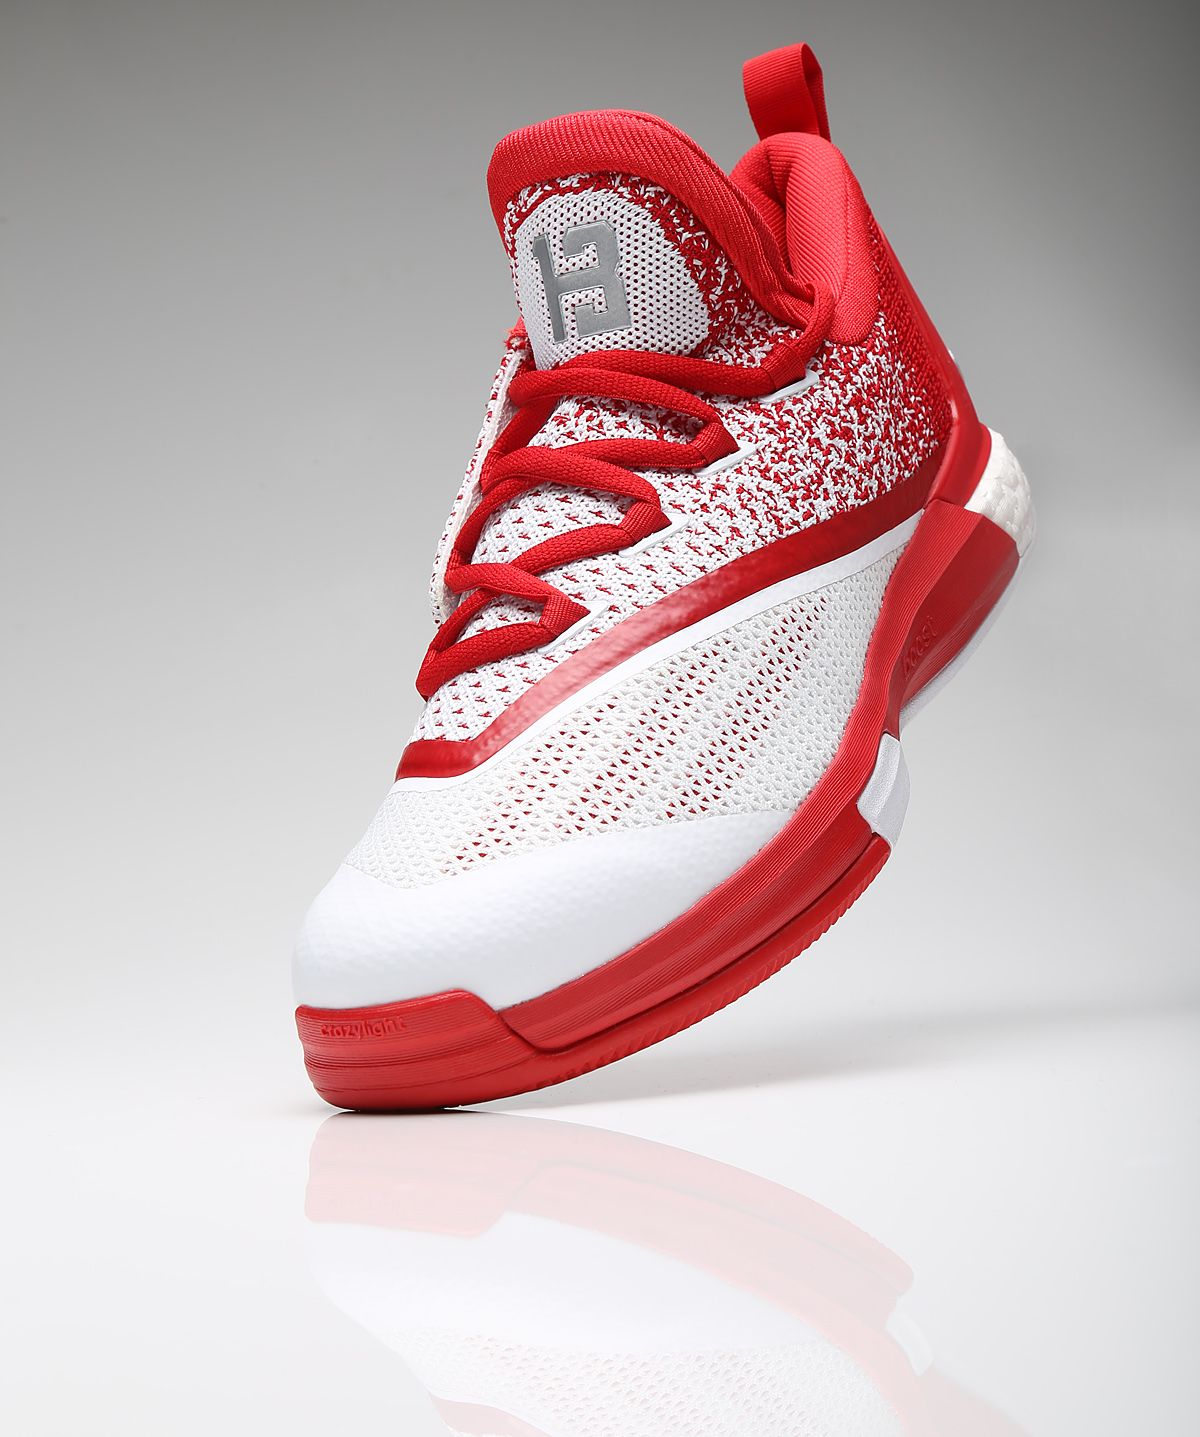 James Harden adidas Crazylilght Boost 2_5 6 | james harden ...